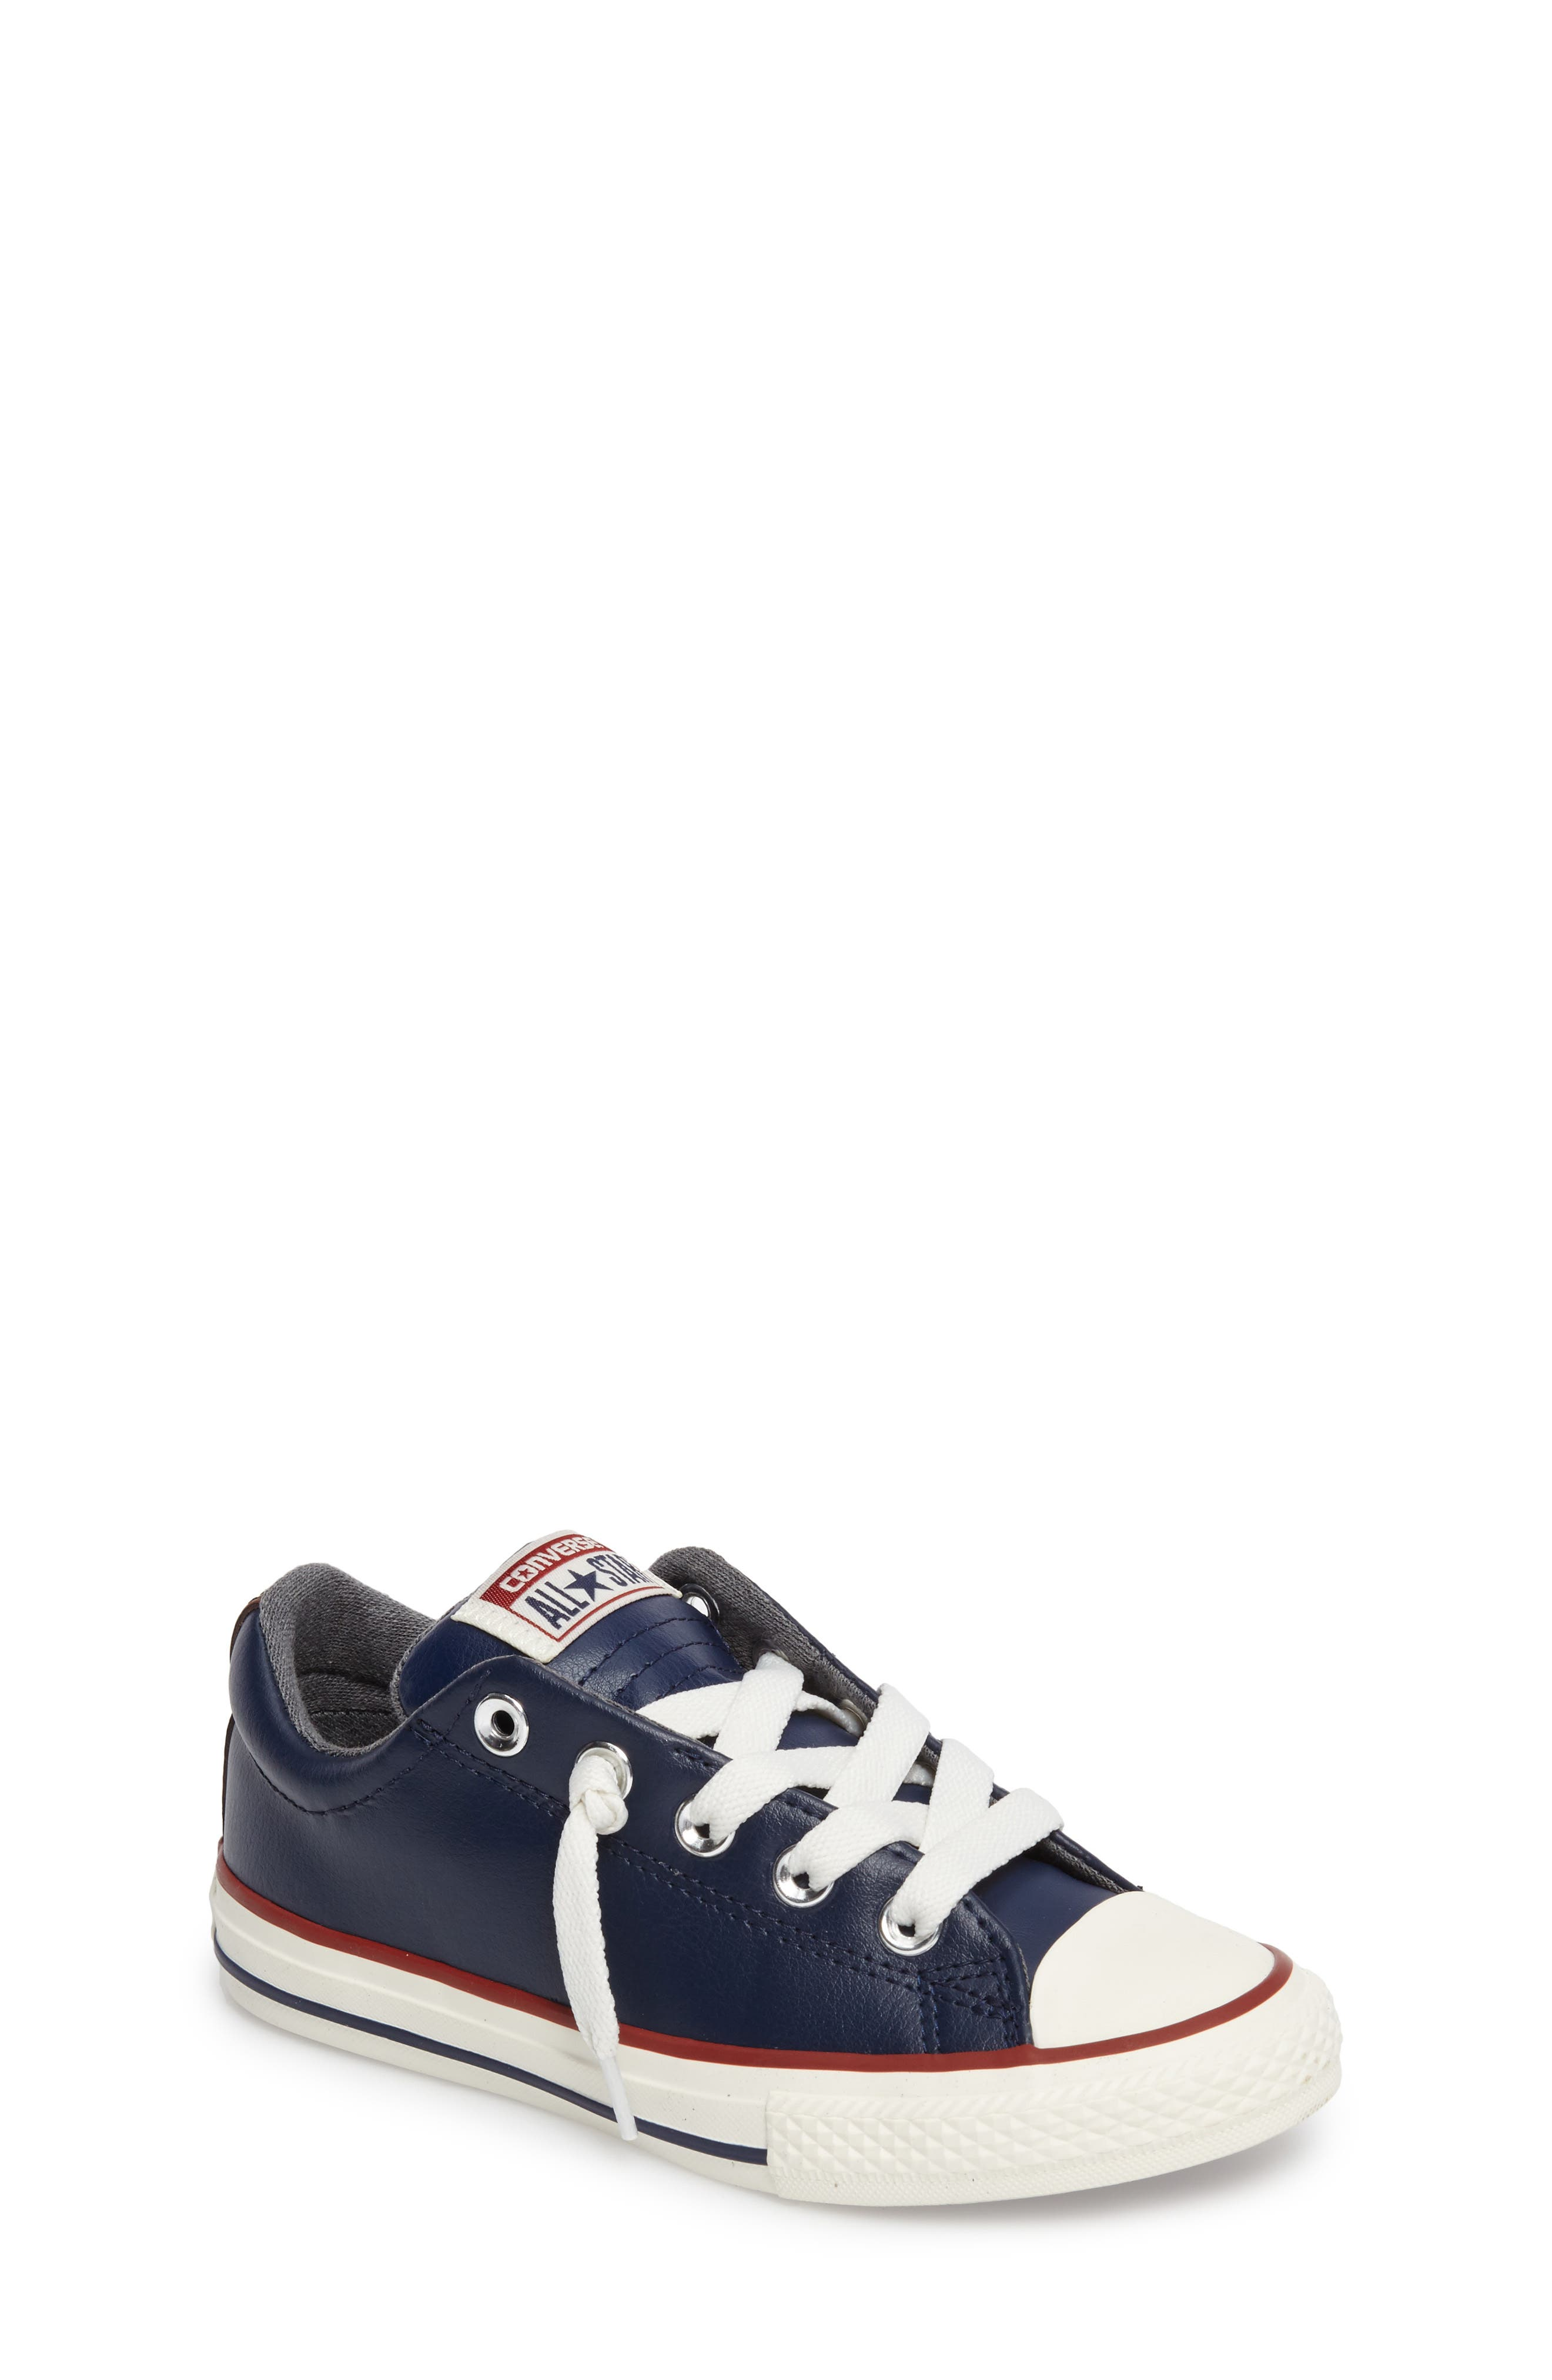 Main Image - Converse Chuck Taylor® All Star® 'Street Ox' Sneaker (Baby, Walker, Toddler, Little Kid & Big Kid)